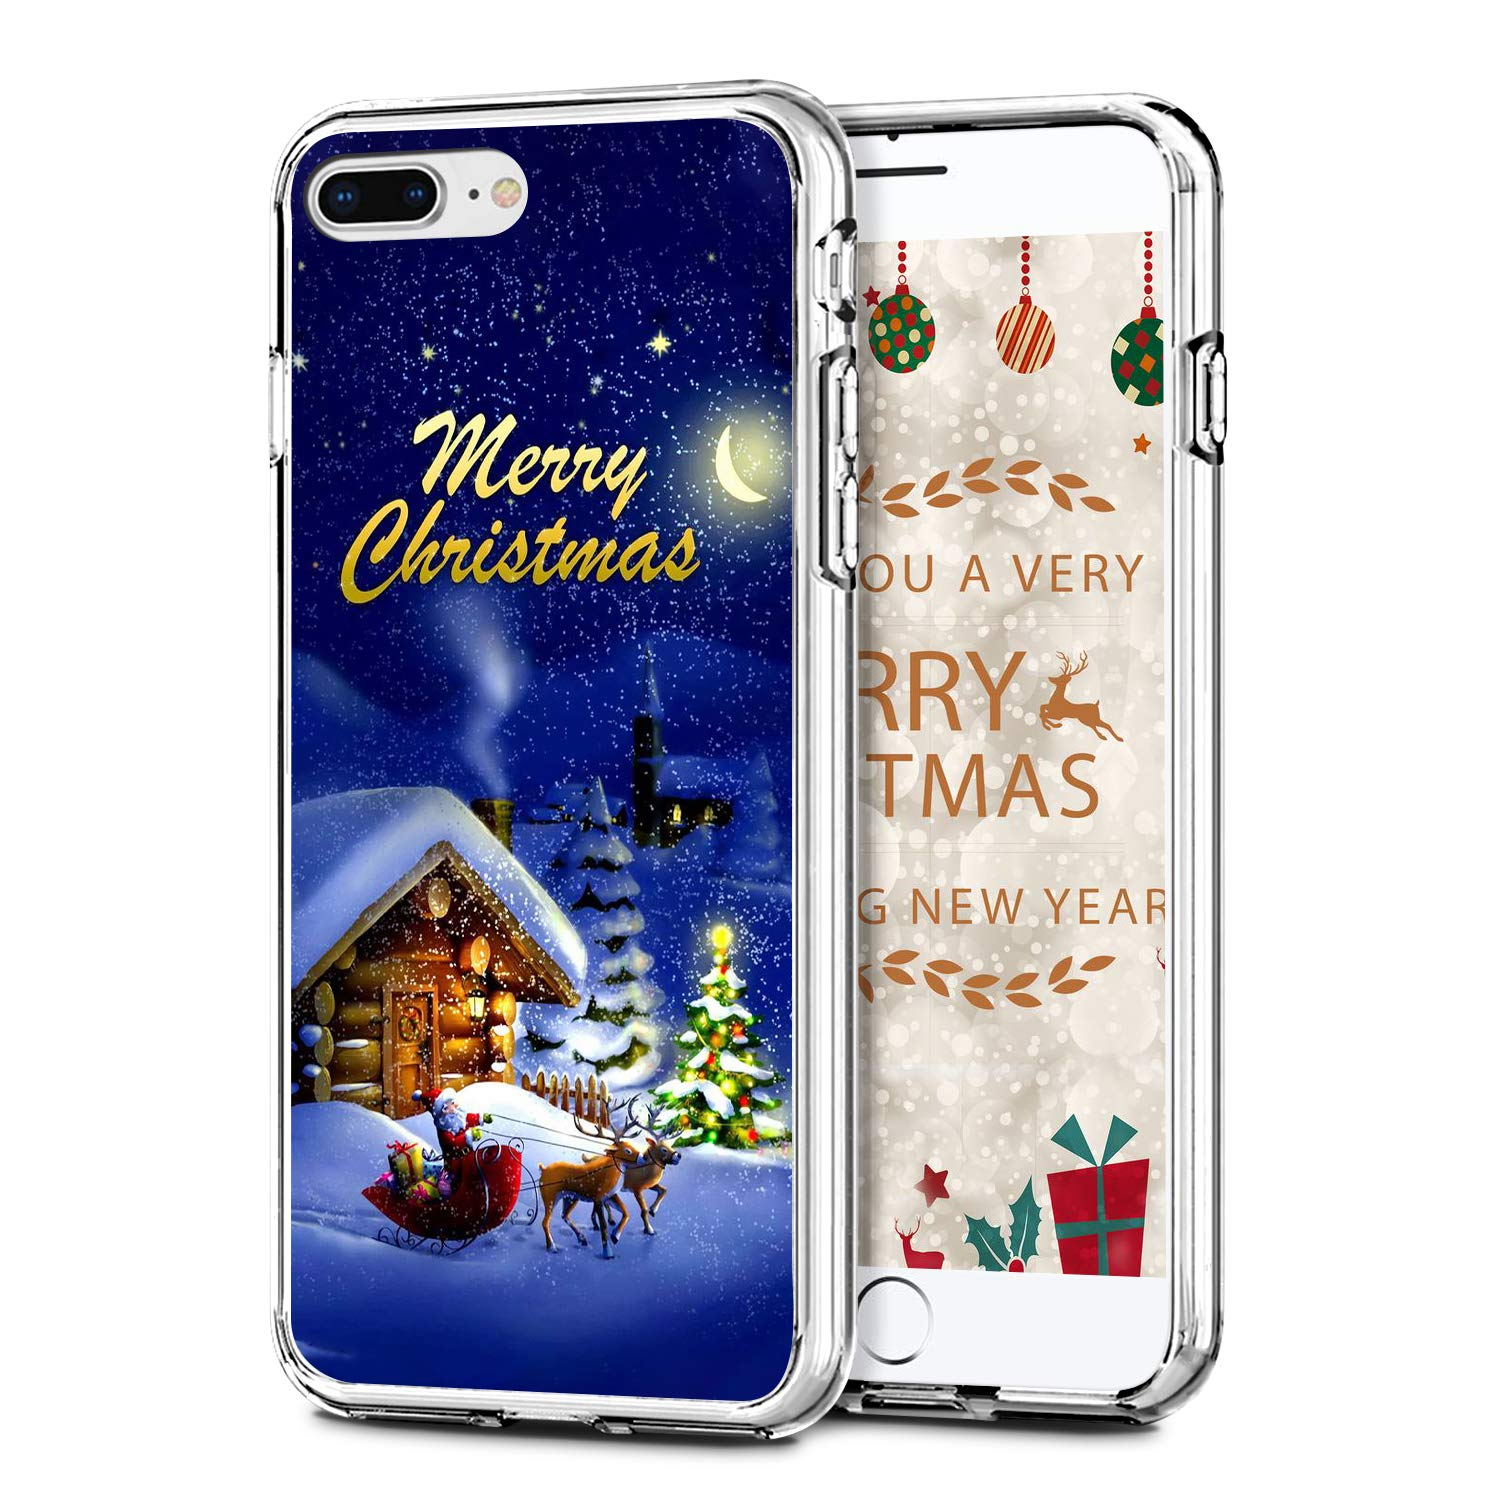 """Newseego Compatible with iPhone 7/8 Plus Christmas Case, Shockproof Series Anti-Yellow Hard PC + TPU Bumper Protective Cover for iPhone 7/8 Plus 5.5"""" Merry Christmas Night Design"""